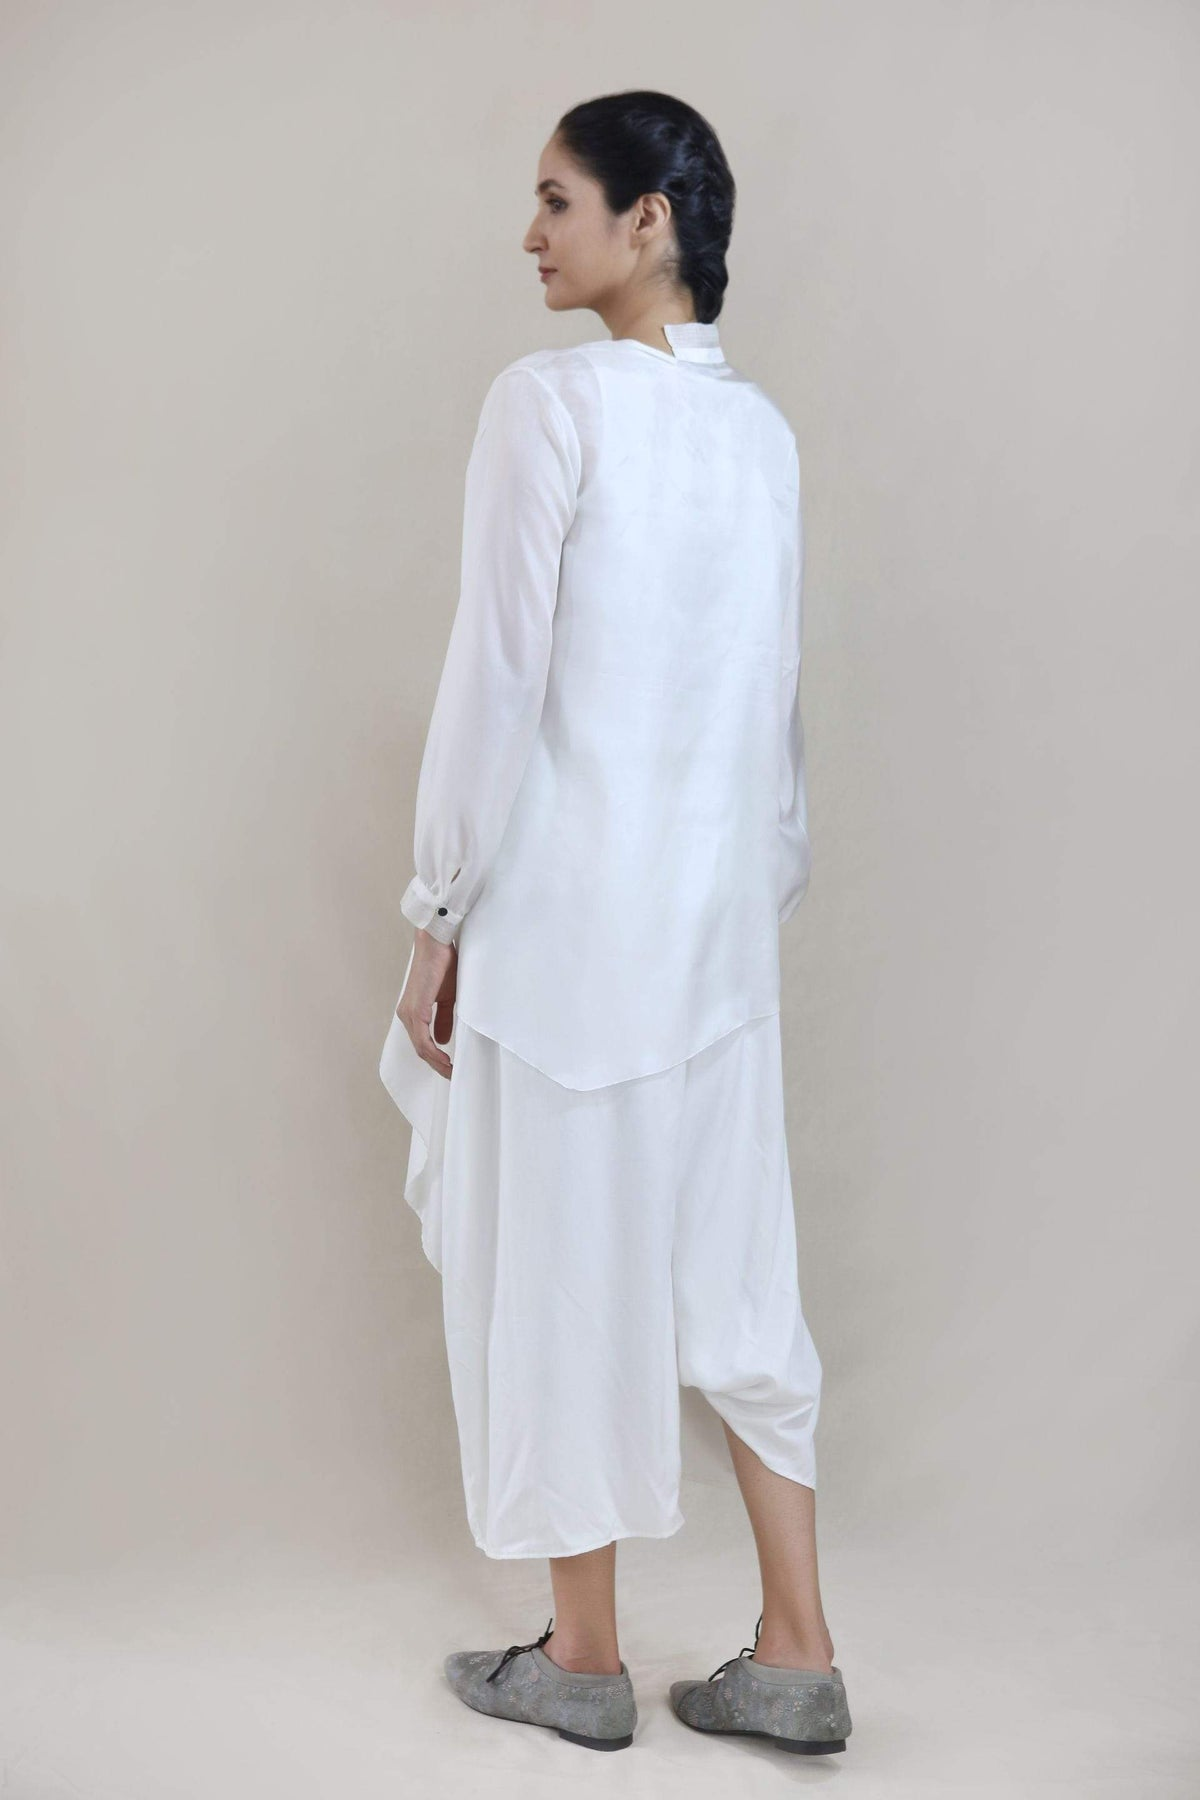 Integument Shirts & Tops Ivory drape top